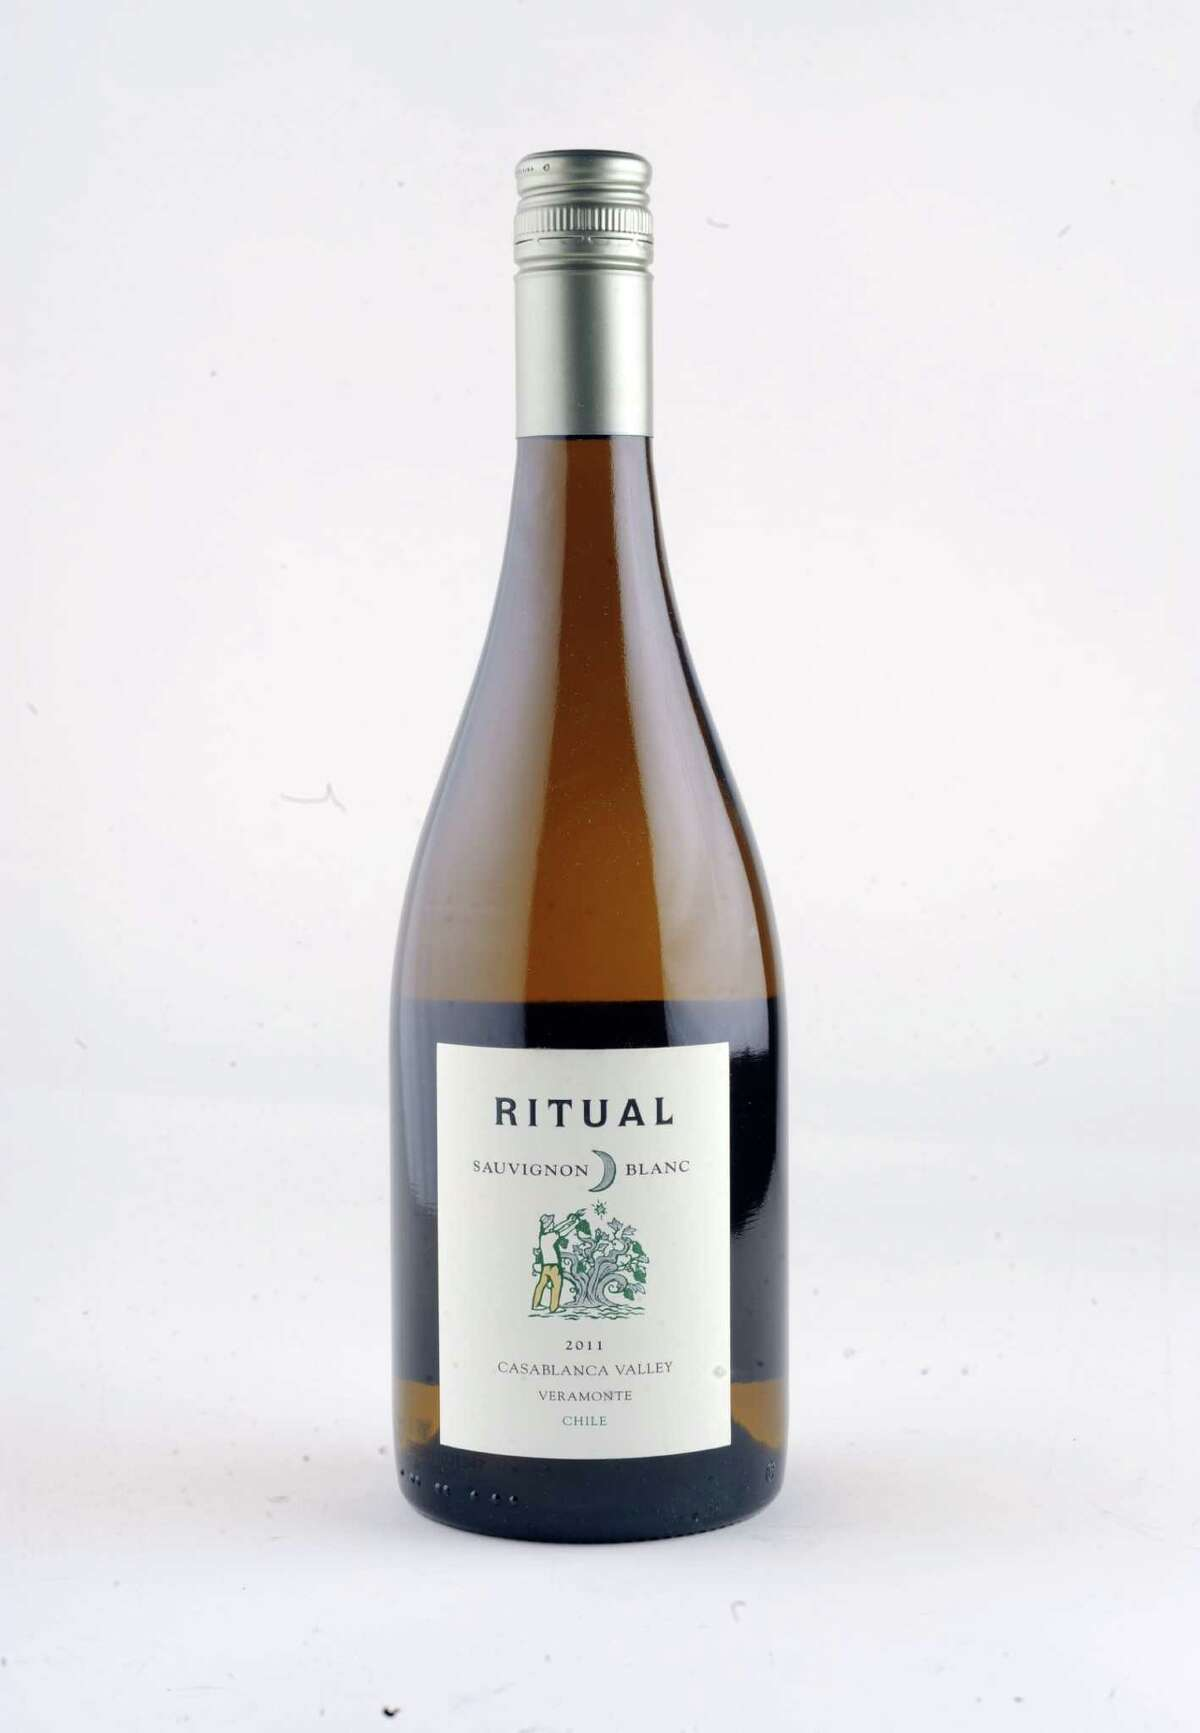 Ritual Sauvignon blanc Chile 2011 on Wednesday Feb. 25, 2015 in Colonie, N.Y. (Michael P. Farrell/Times Union)